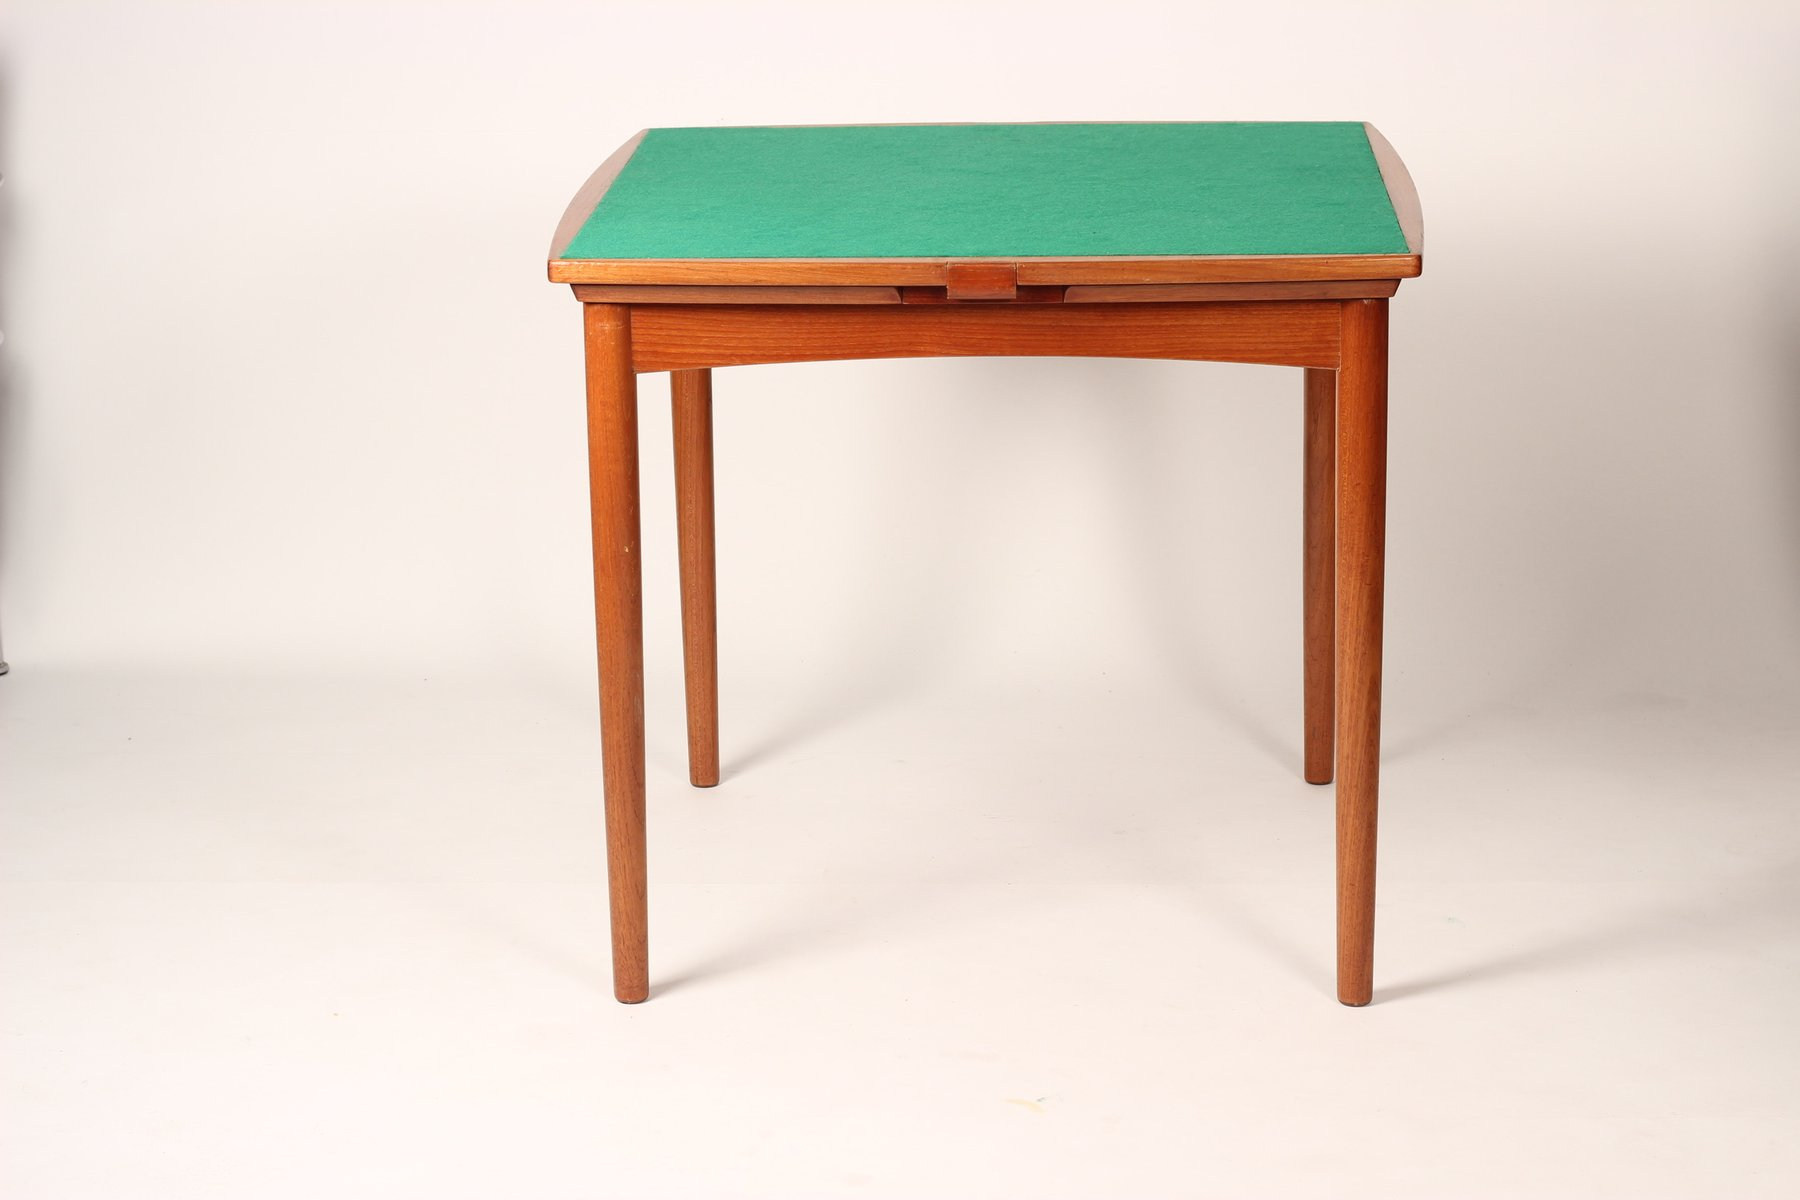 MidCentury Modern Extendable Card Table S For Sale At Pamono - Mid century modern card table